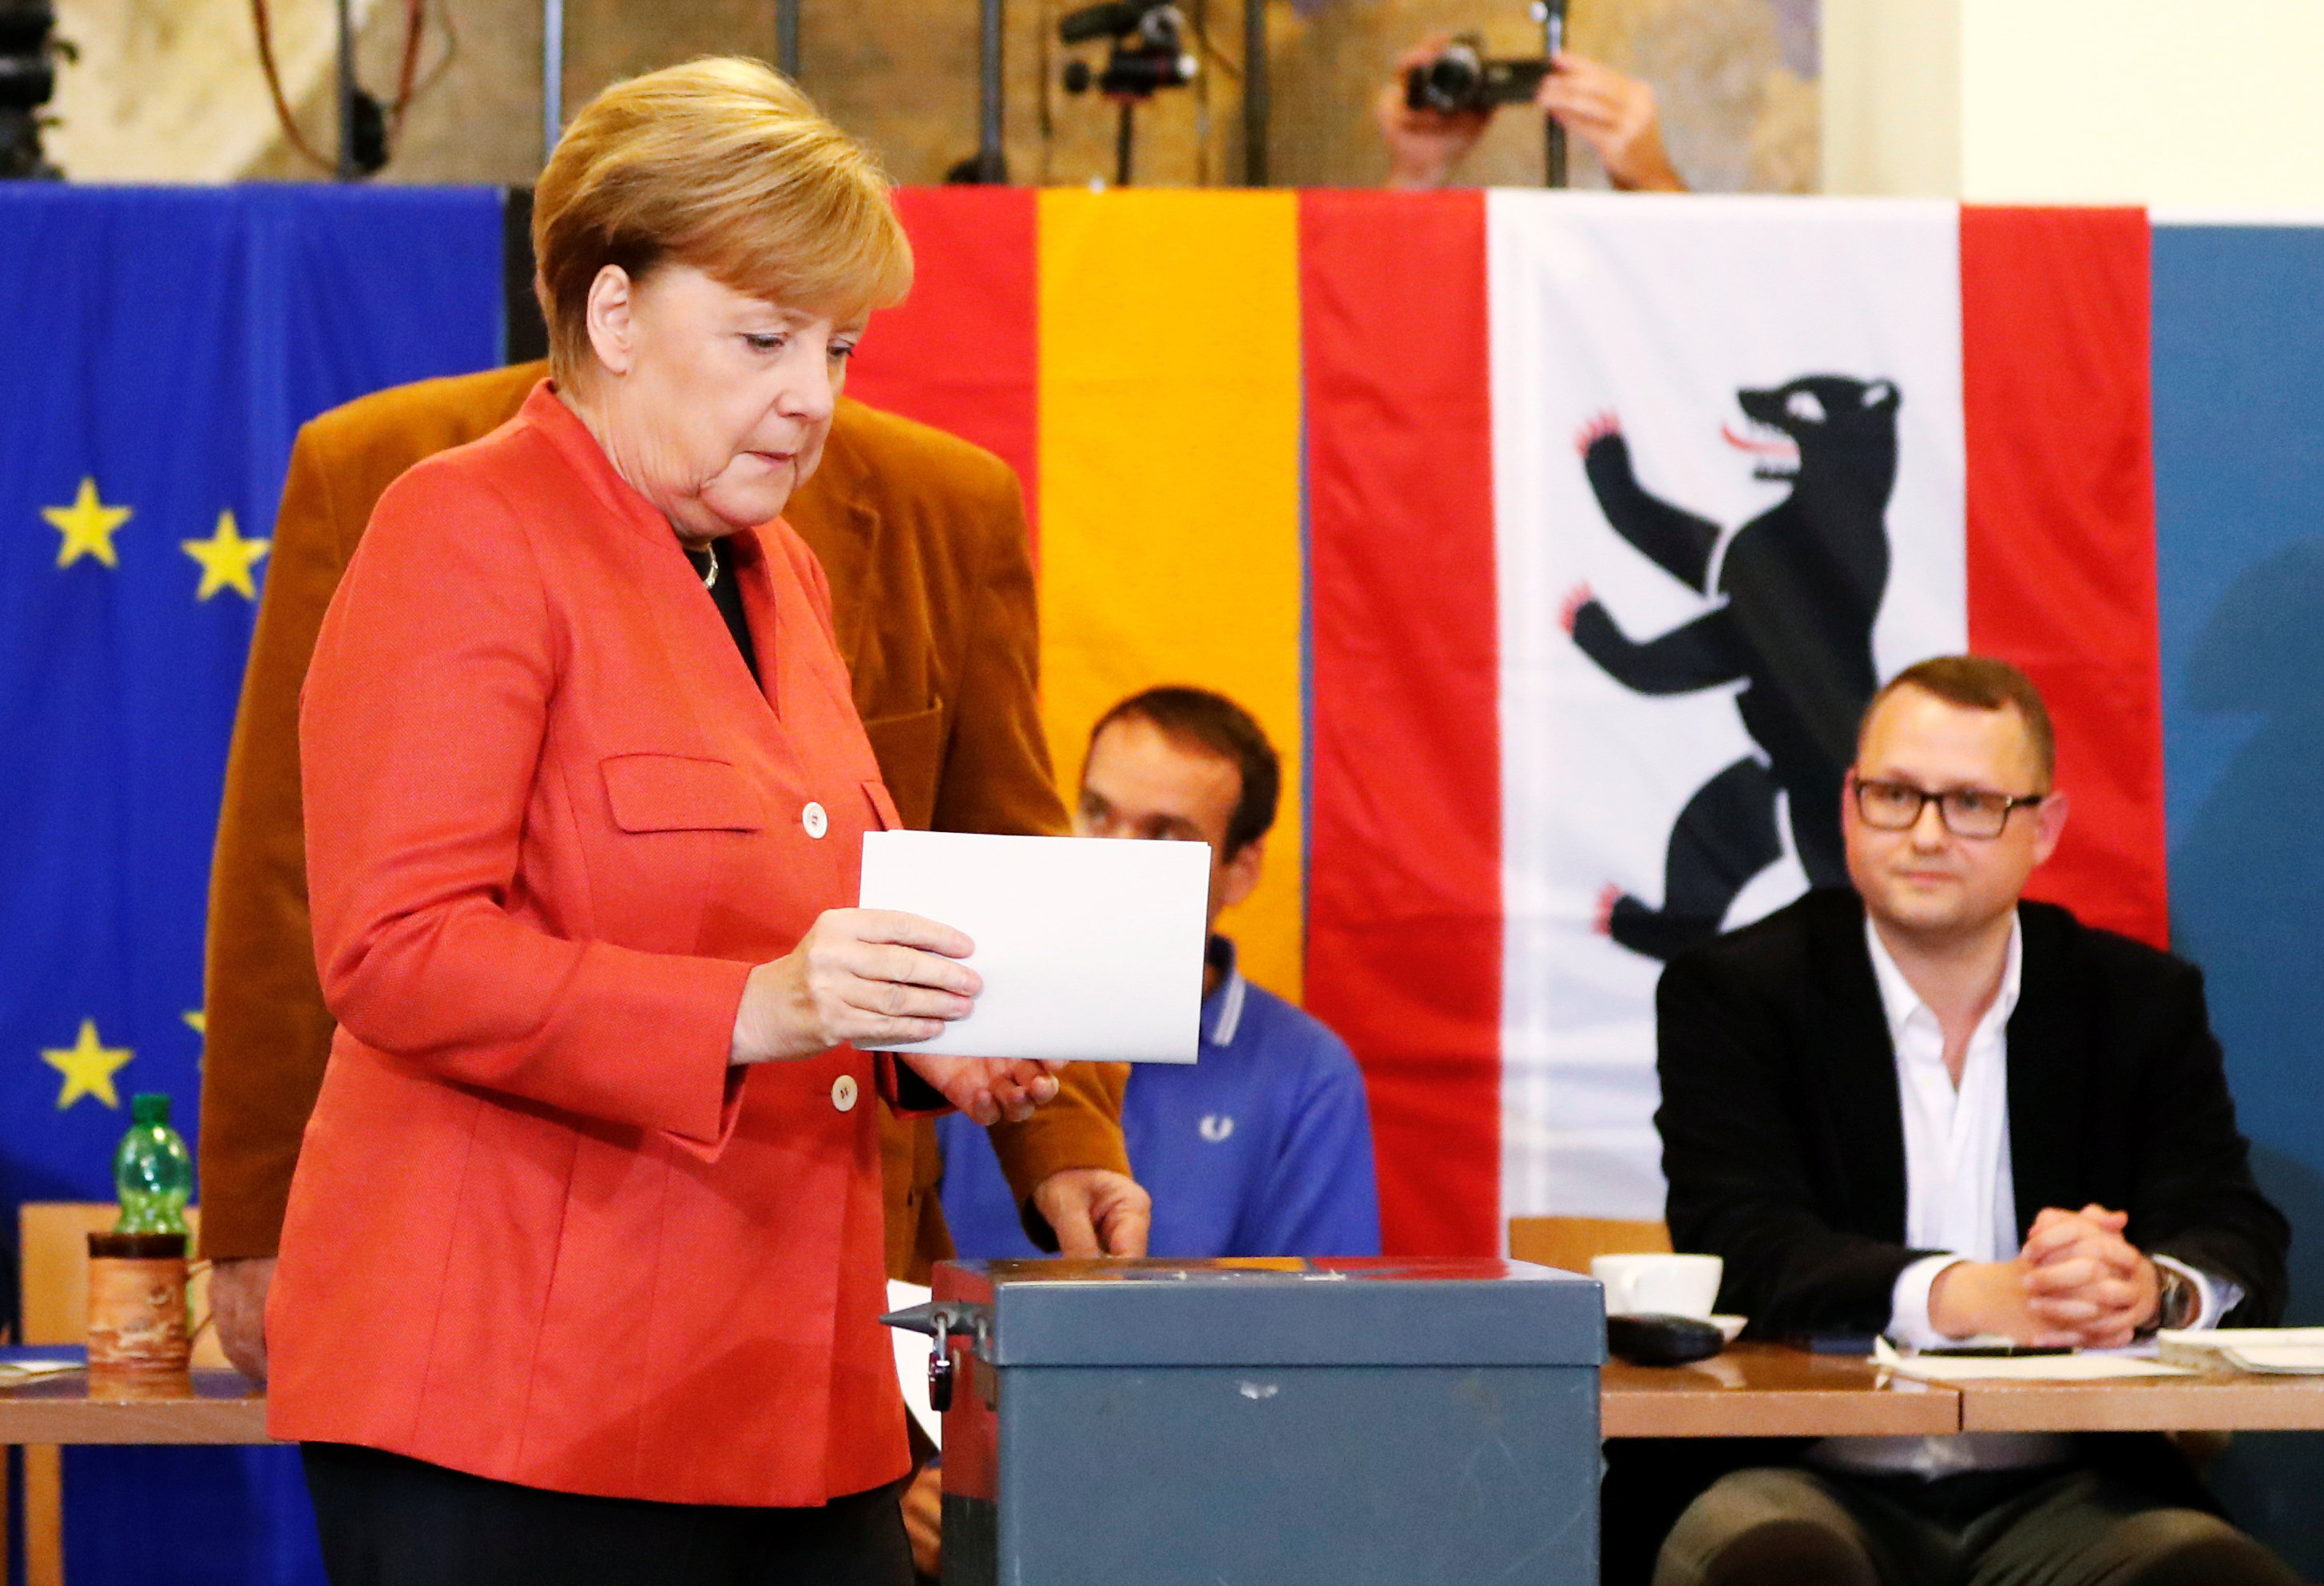 2017 09 24T123855Z 496910719 RC126D6DA180 RTRMADP 3 GERMANY ELECTION MERKEL VOTES